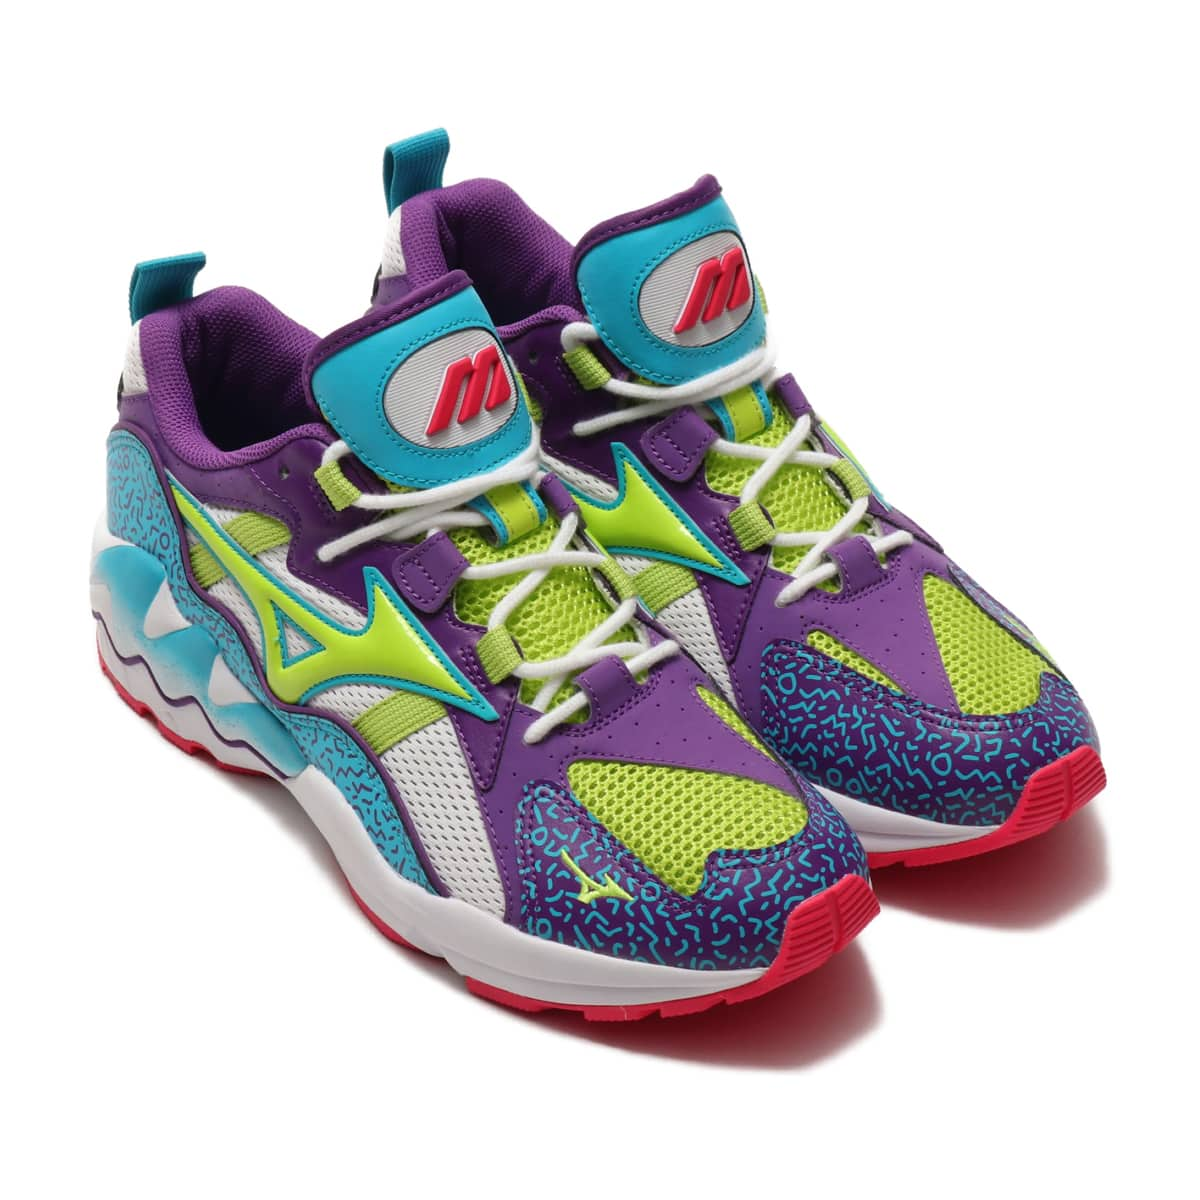 MIZUNO WAVE RIDER 1 WHITE/GREEN/PURPLE 19AW-I_photo_large